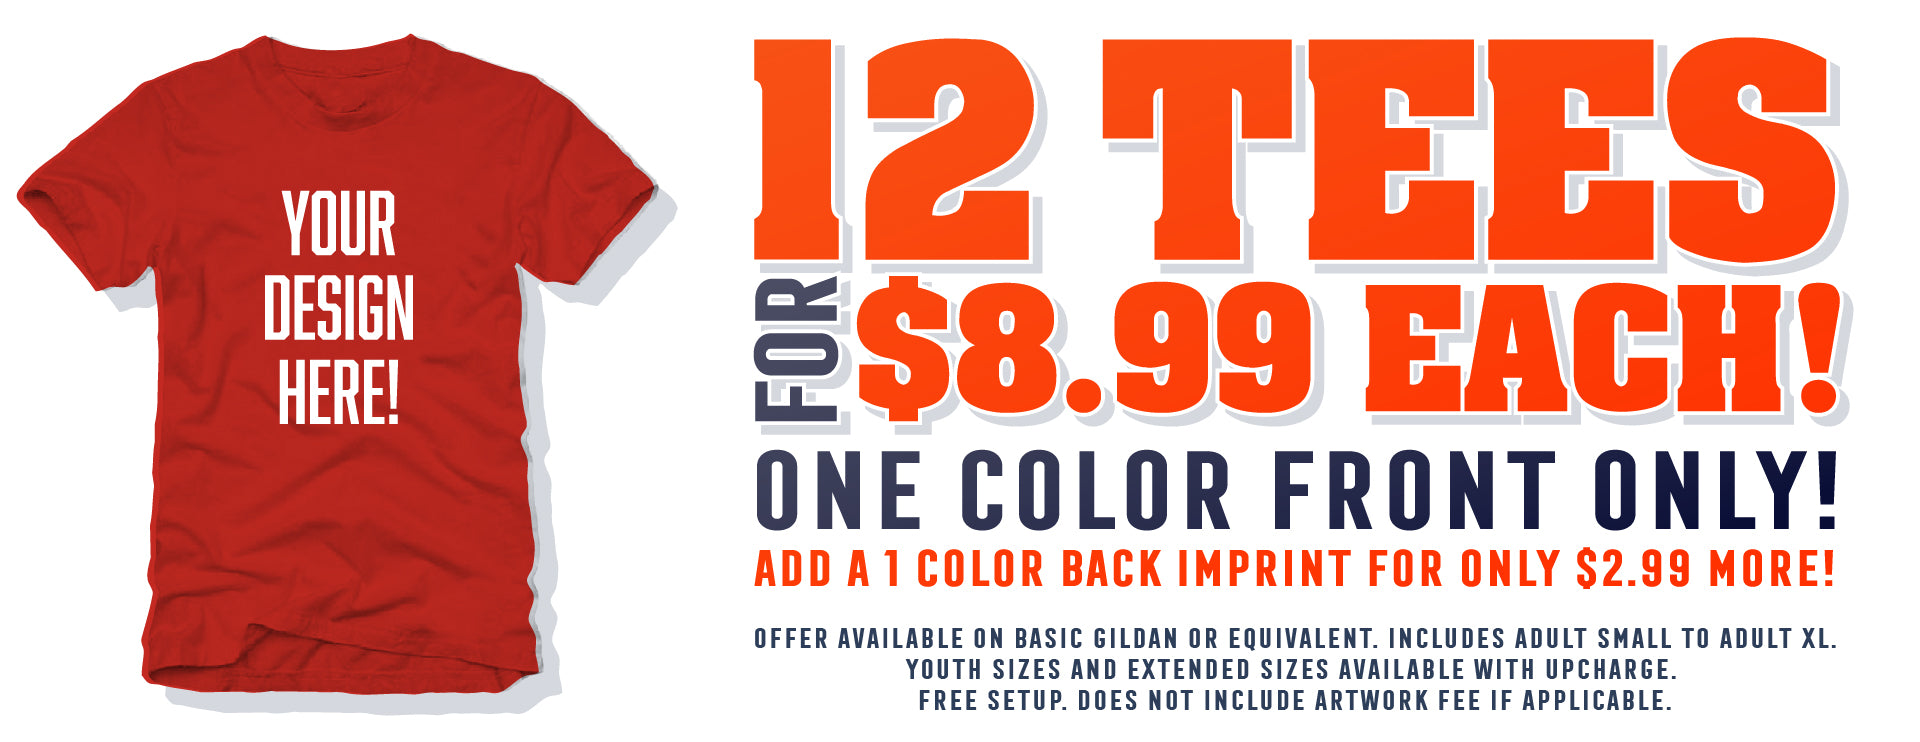 4aff78d2a Get 12 T-Shirts for $8.99 Each! - Surge Screen Printing and Embroidery